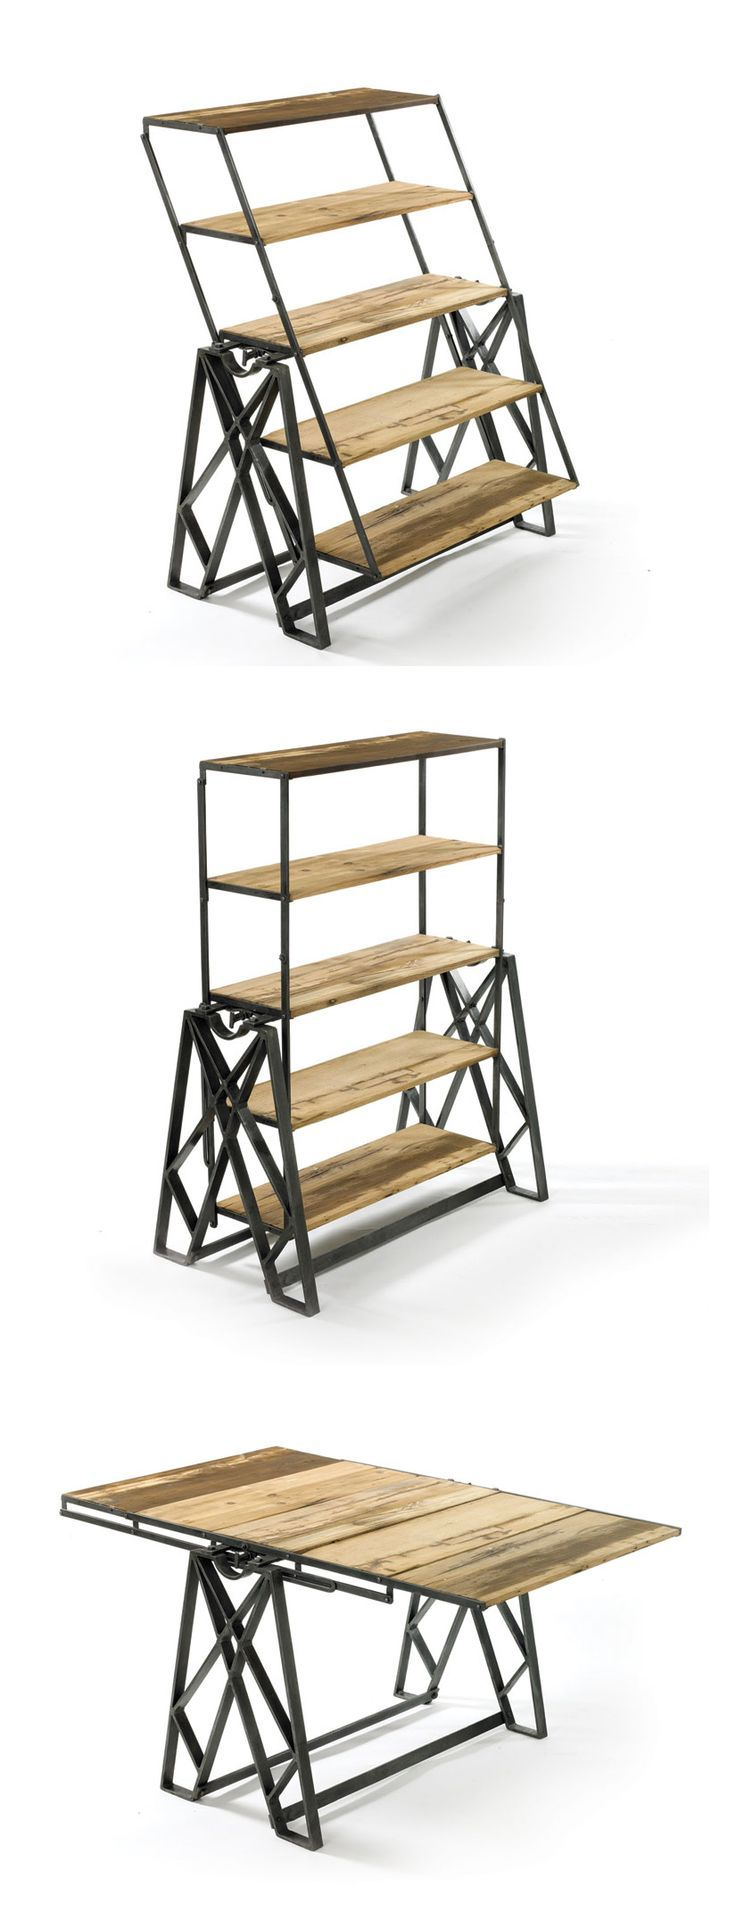 Reclaimed Wood Convertible Shelf Table Only What S The Point Of Shelves That Have To Be Cleared Before Each Table Use Furniture Diy Furniture Decor